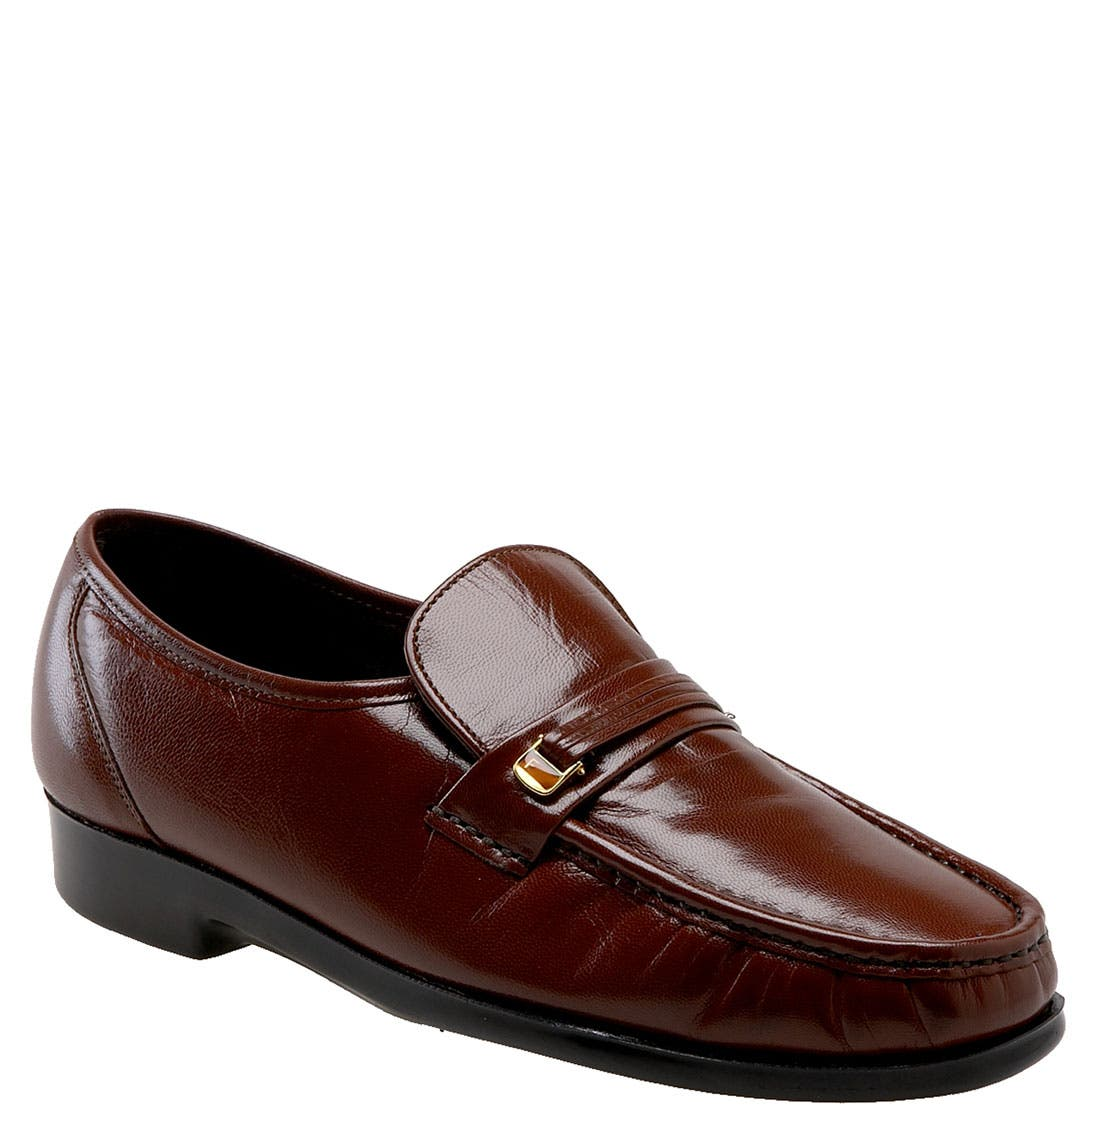 Alternate Image 1 Selected - Florsheim 'Riva' Moccasin Slip-On